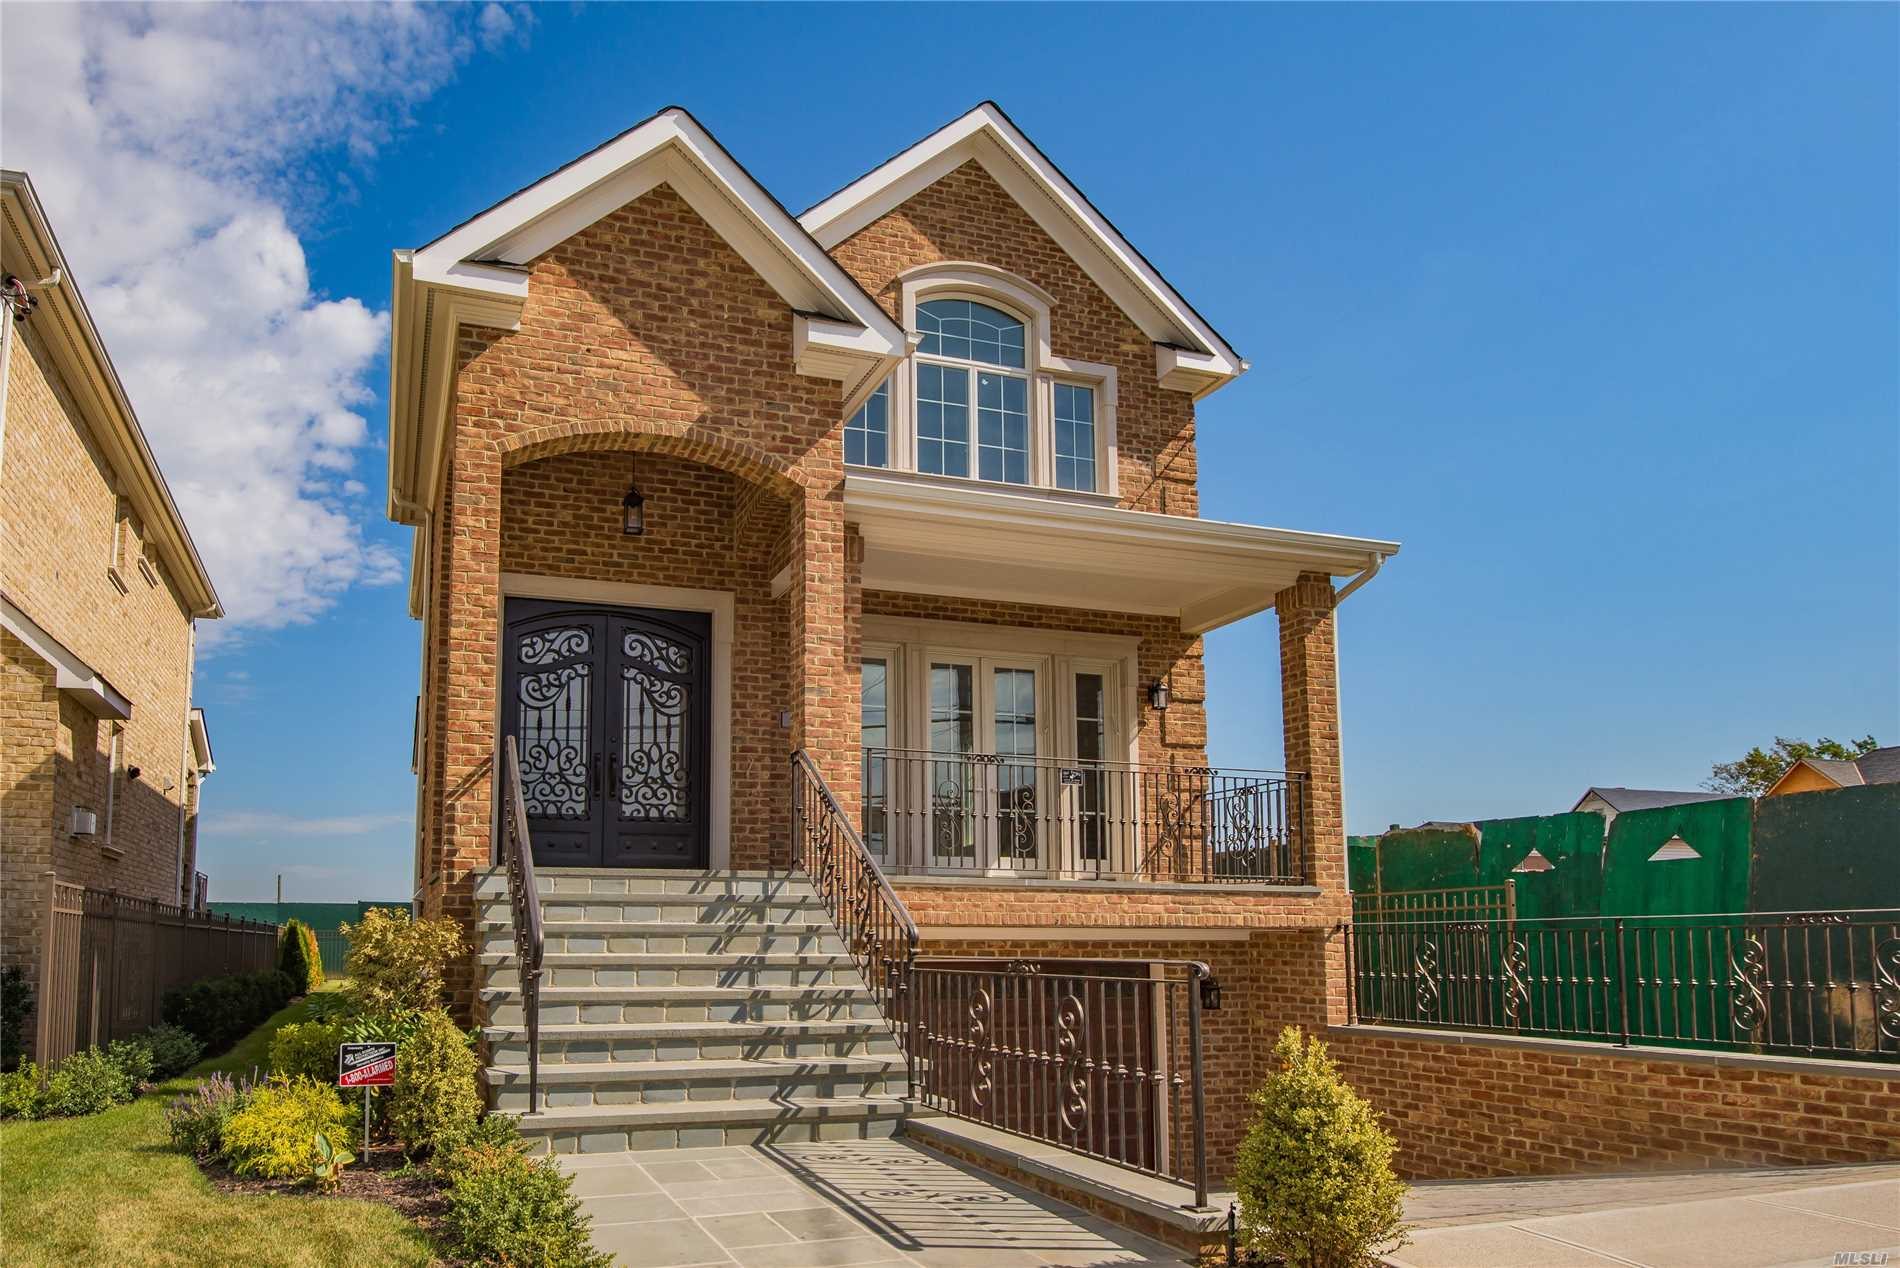 ***Ready To Move In*** New Whitestone Development, The Bridges At Whitestone. Brick And Precast Stone Center Hall Colonials 4 Bedrooms, 3.5 Baths. Designed By Renowned Architect And Built By Award Winning Developer. High End Architectural Details Throughout, Hardwood Floors, Marble Entry, 9'8 Ceilings On 1st Fl And Cathedral On 2nd Fl. Close Proximity To Major Highways, Airports, Nyc